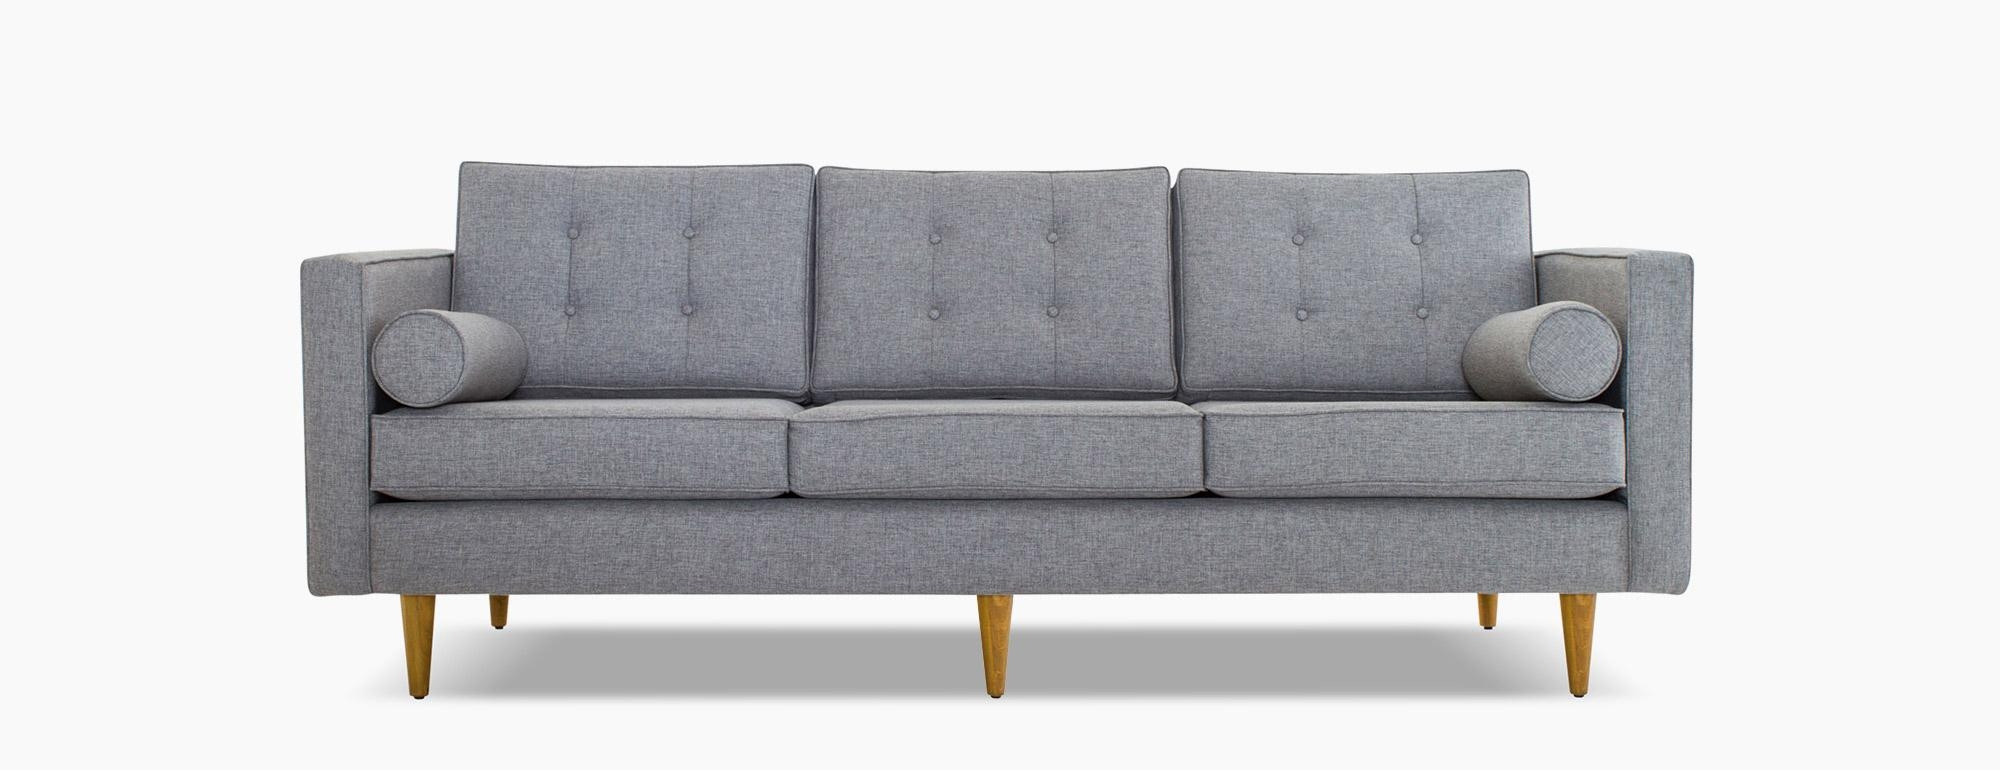 Braxton Sofa | Joybird Within Braxton Sofa (Image 17 of 20)